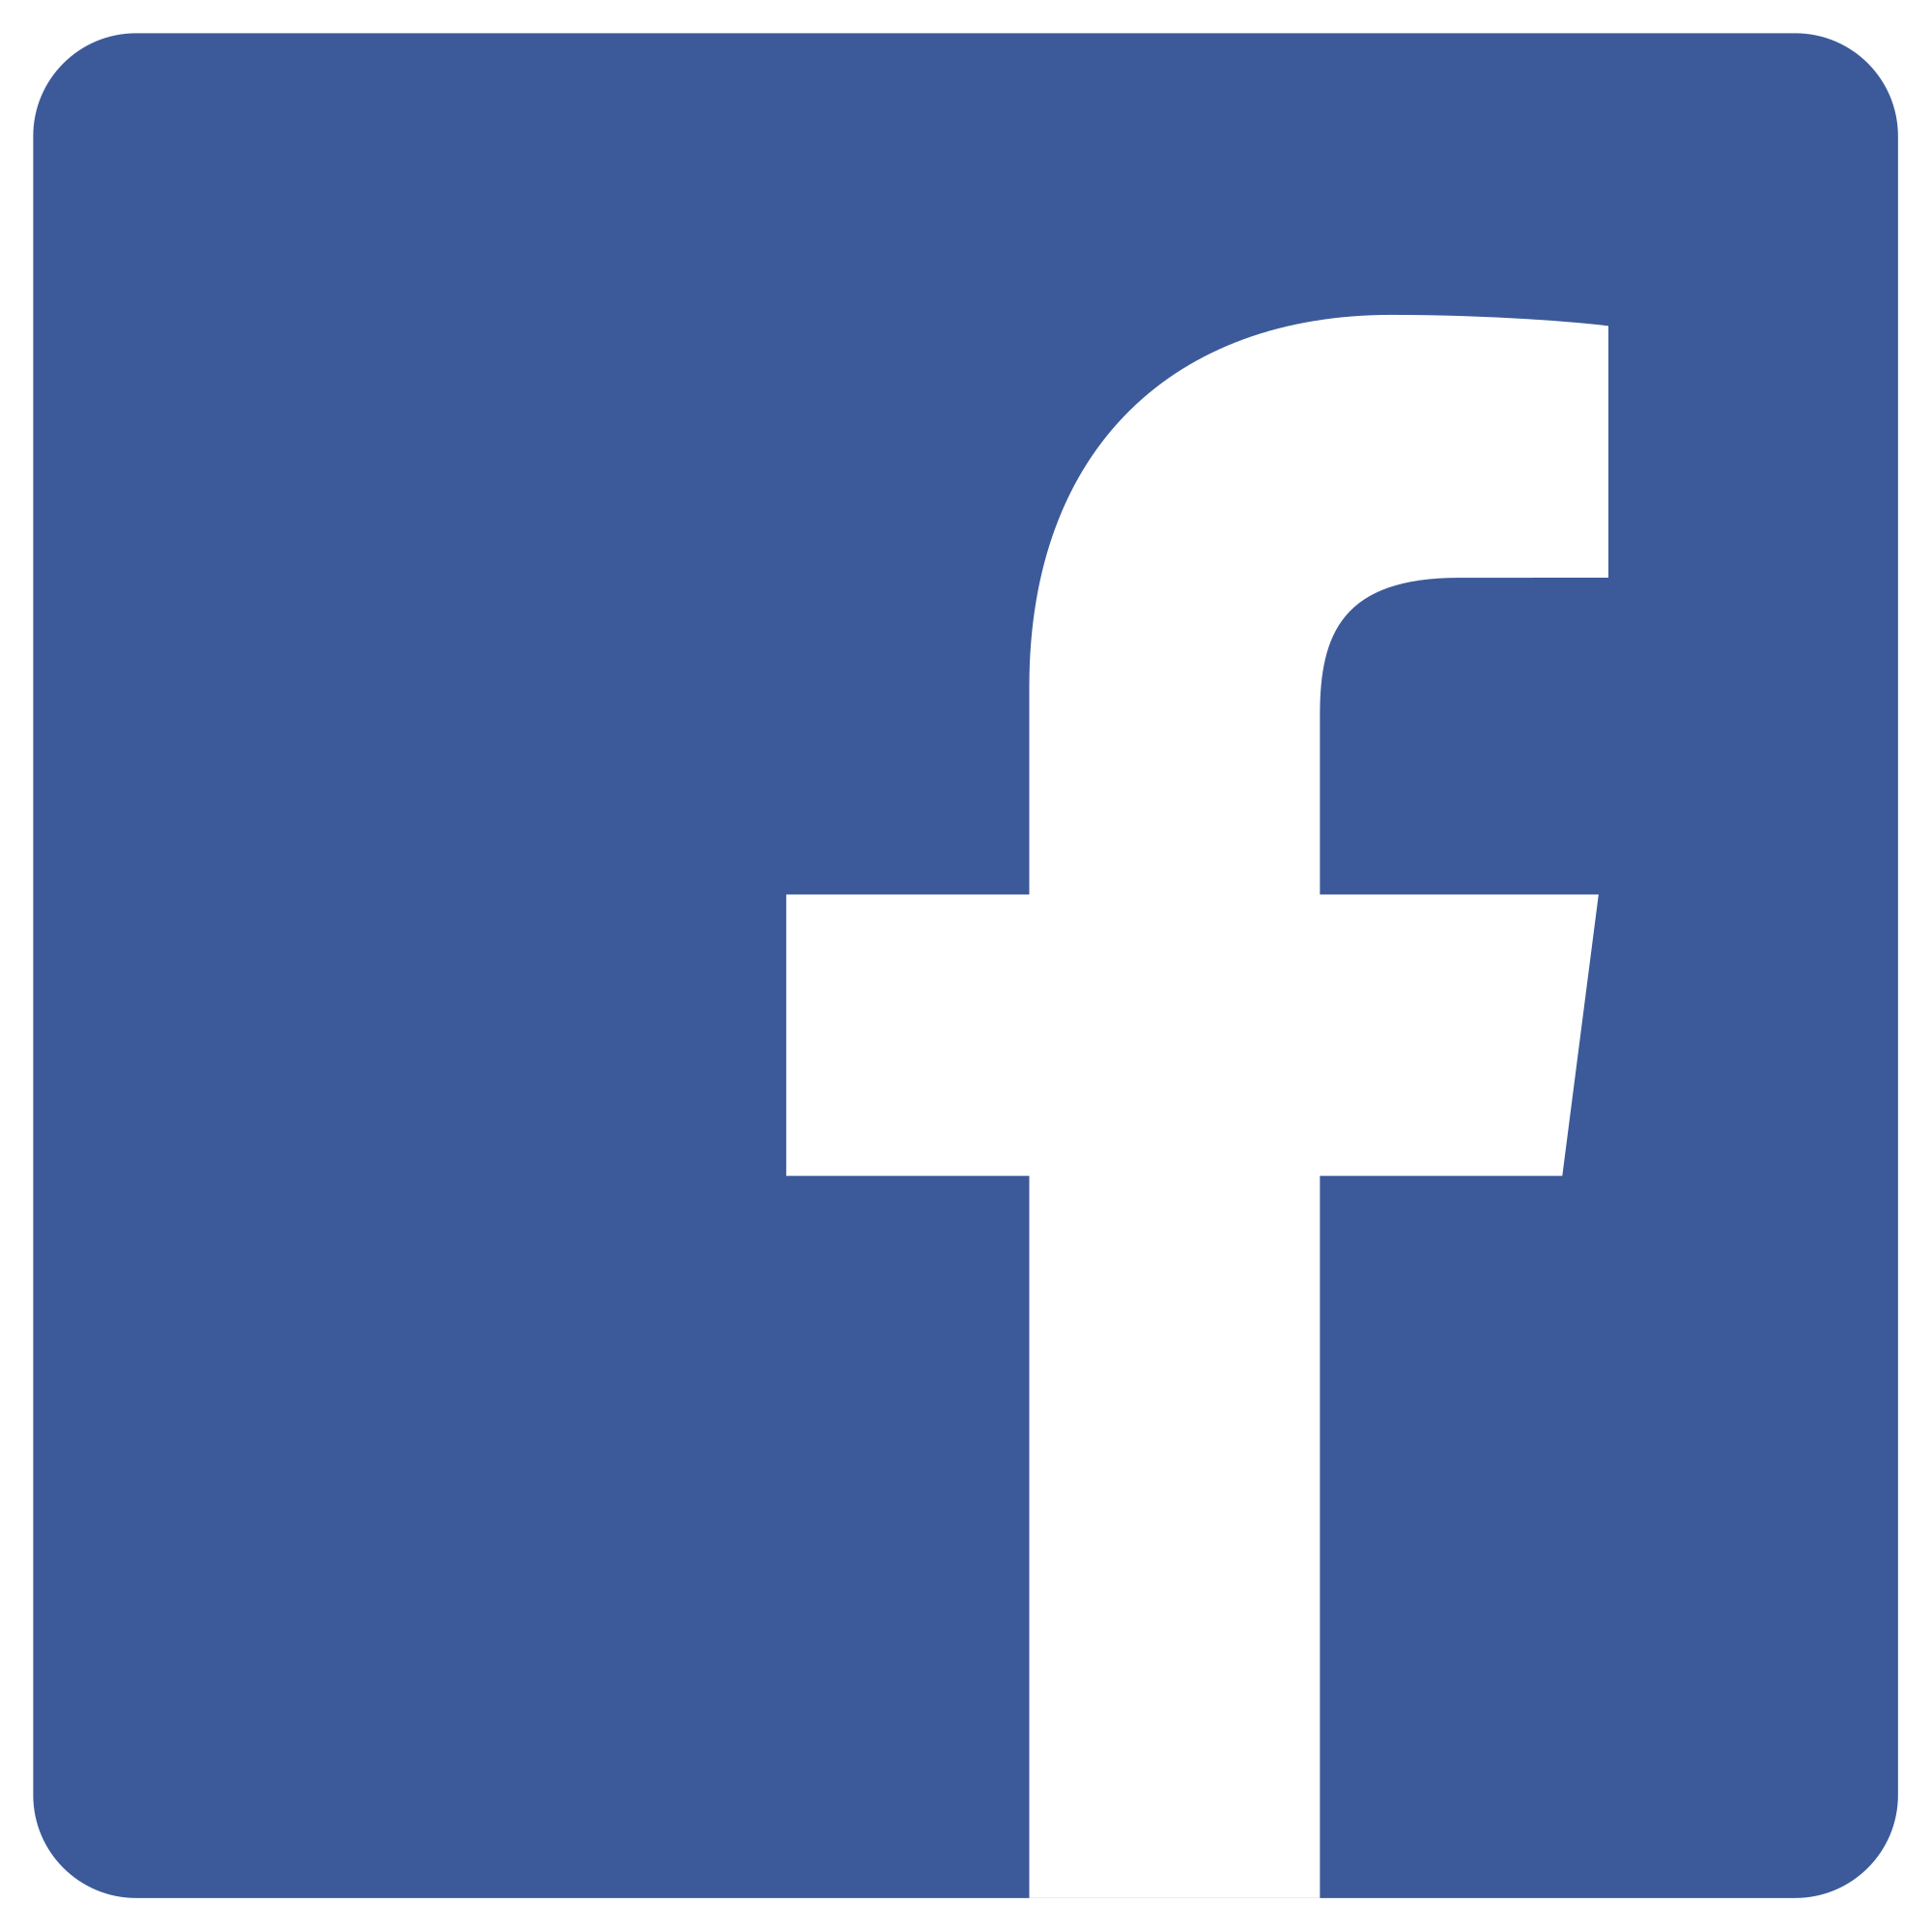 Click Here to Follow McCormick Home on Facebook